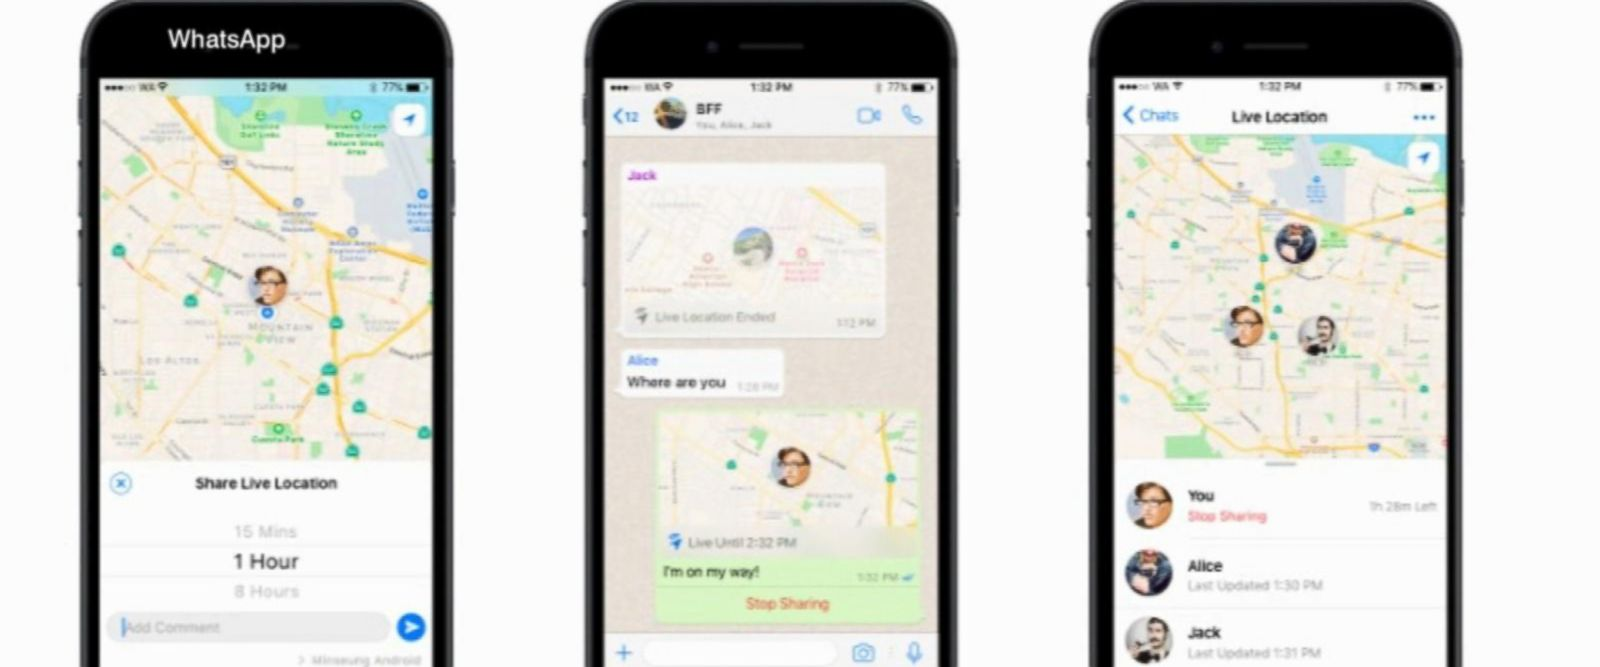 VIDEO: WhatsApp's 'Live Location' allows you to track yourself